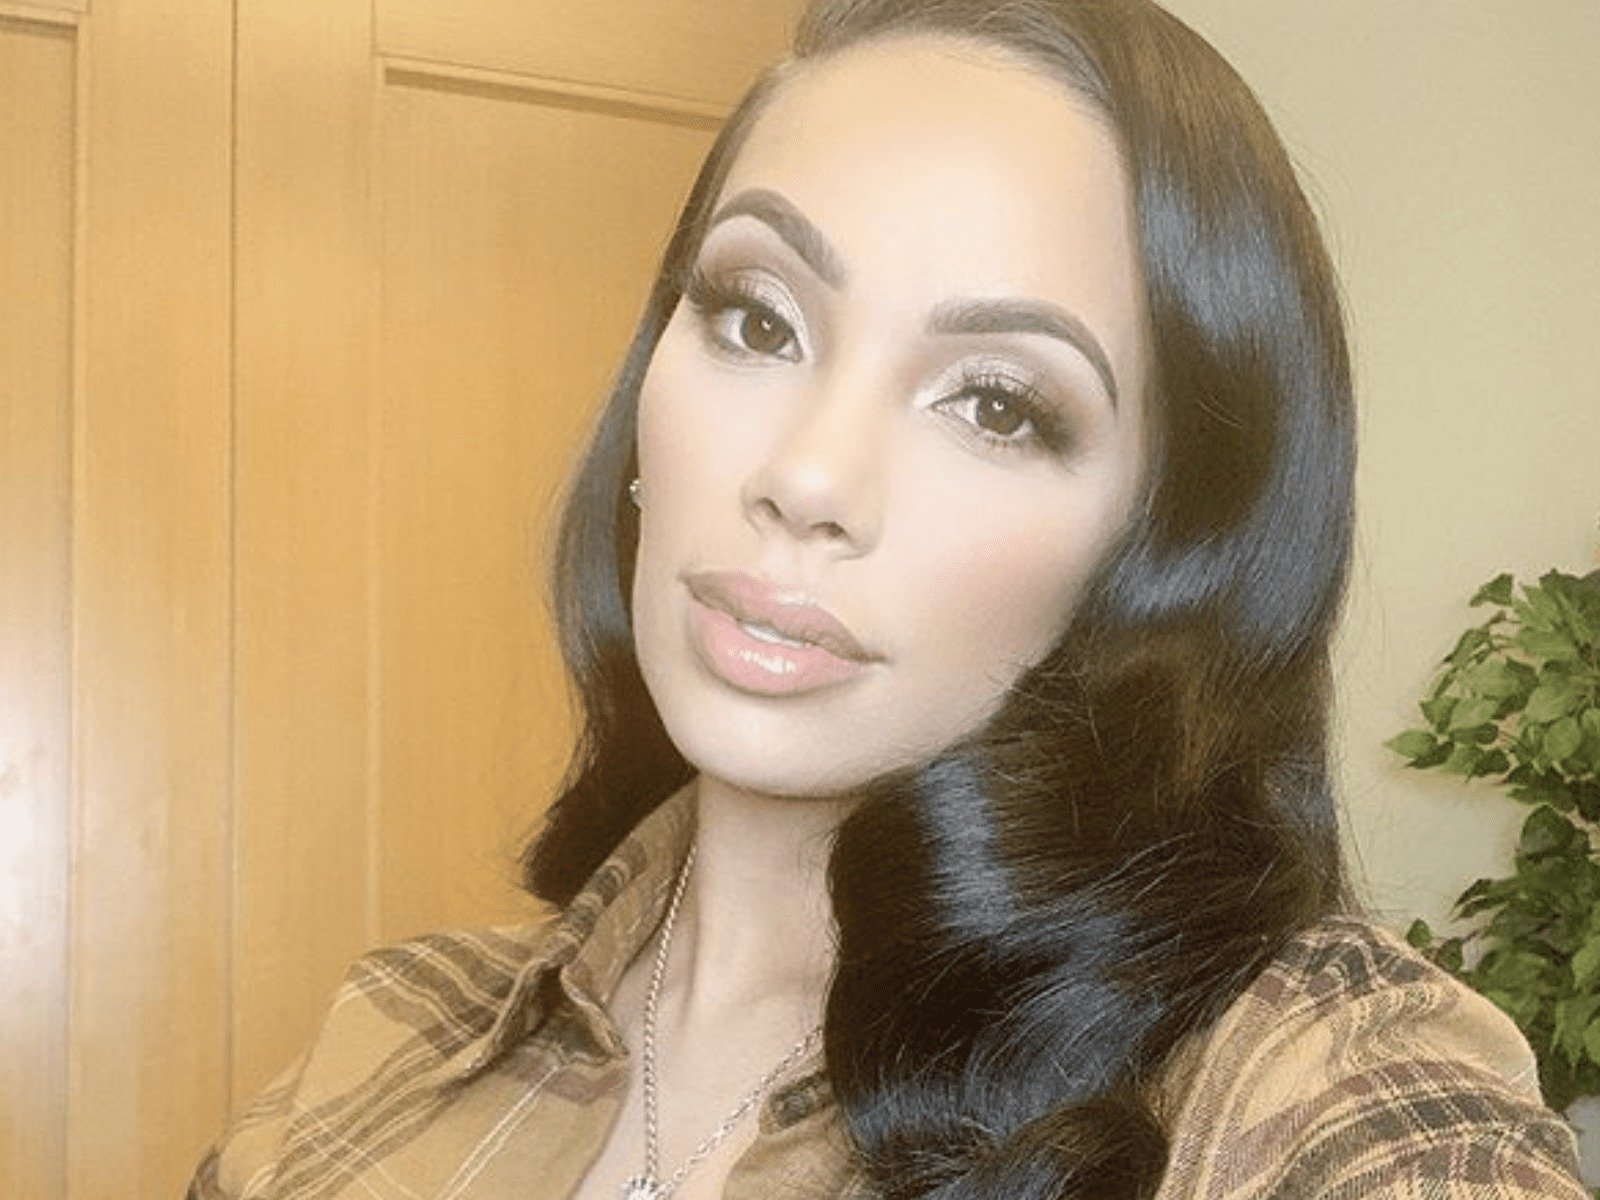 Erica Mena's Latest Look Has Fans Calling Her Erica Kardashian – See The Before And After Photos